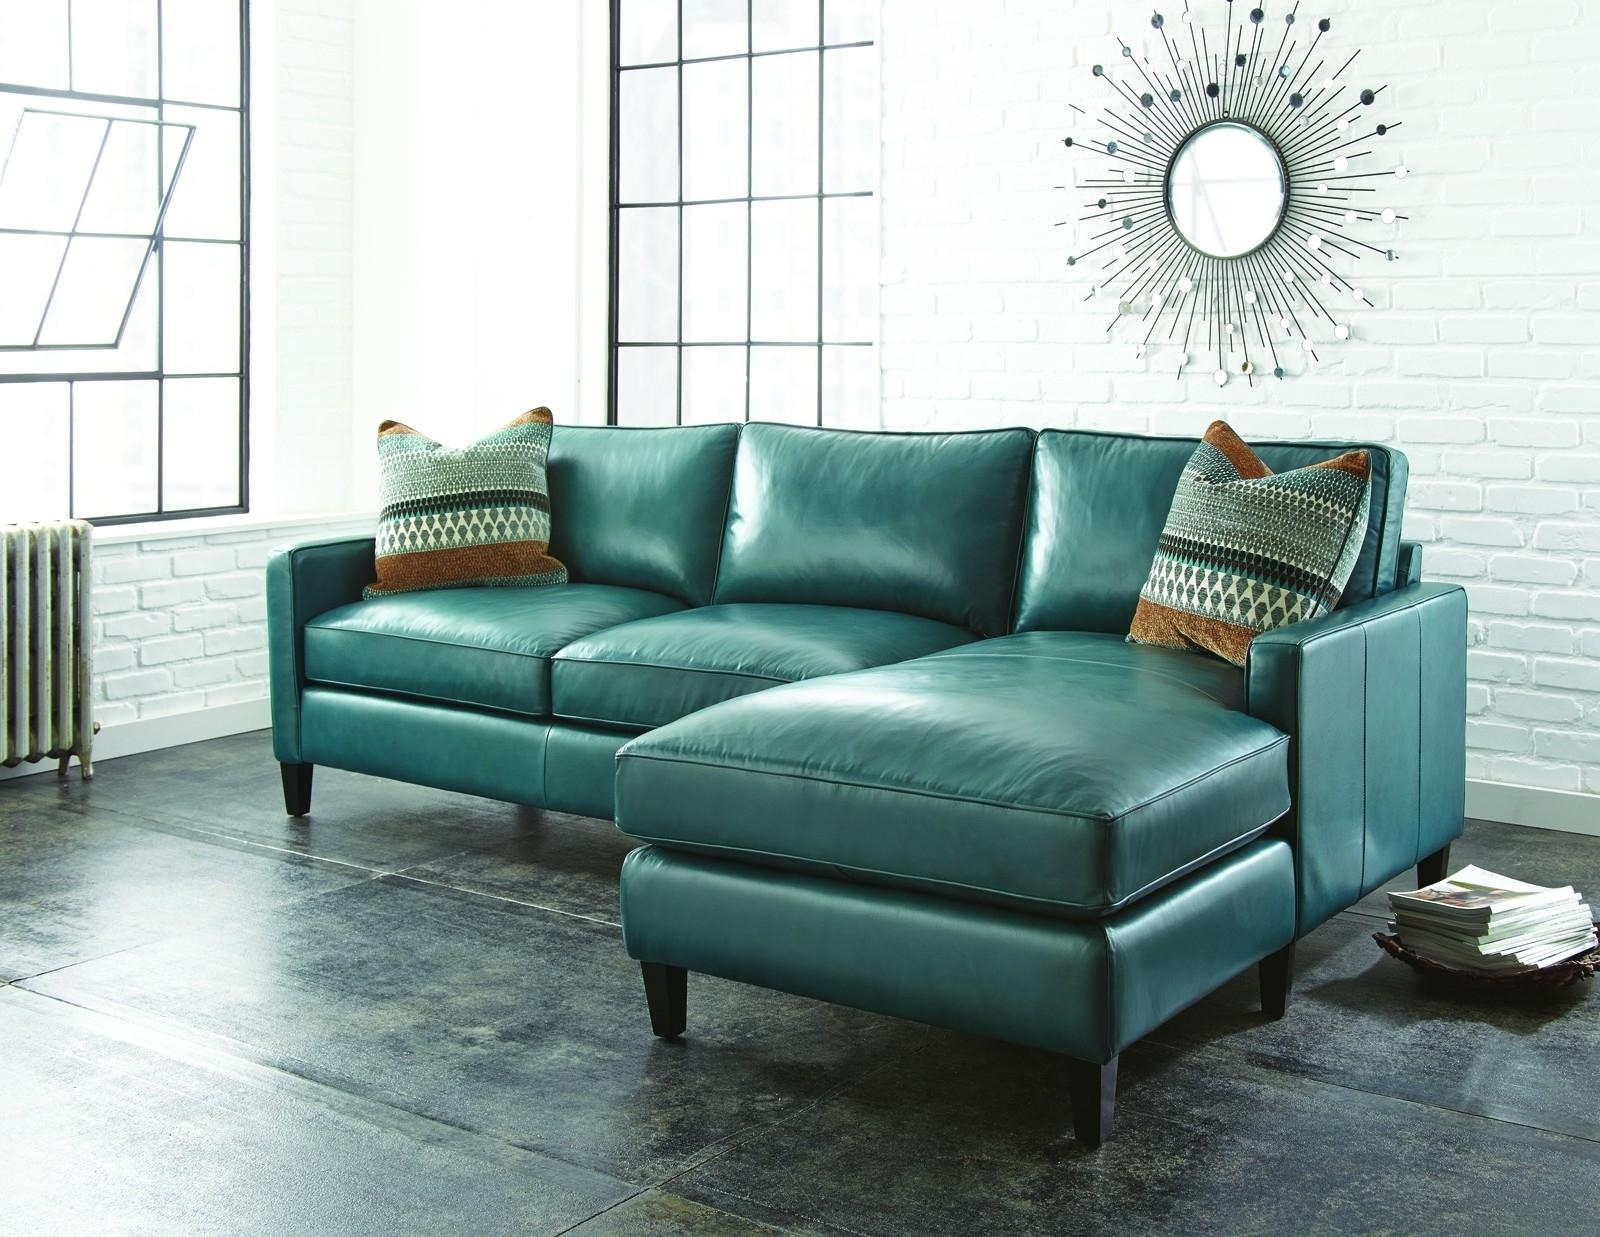 Sofas Center : Sectional Sleeper Sofa Costco Cleanupflorida Com Throughout Stacey Leather Sectional (Image 17 of 20)